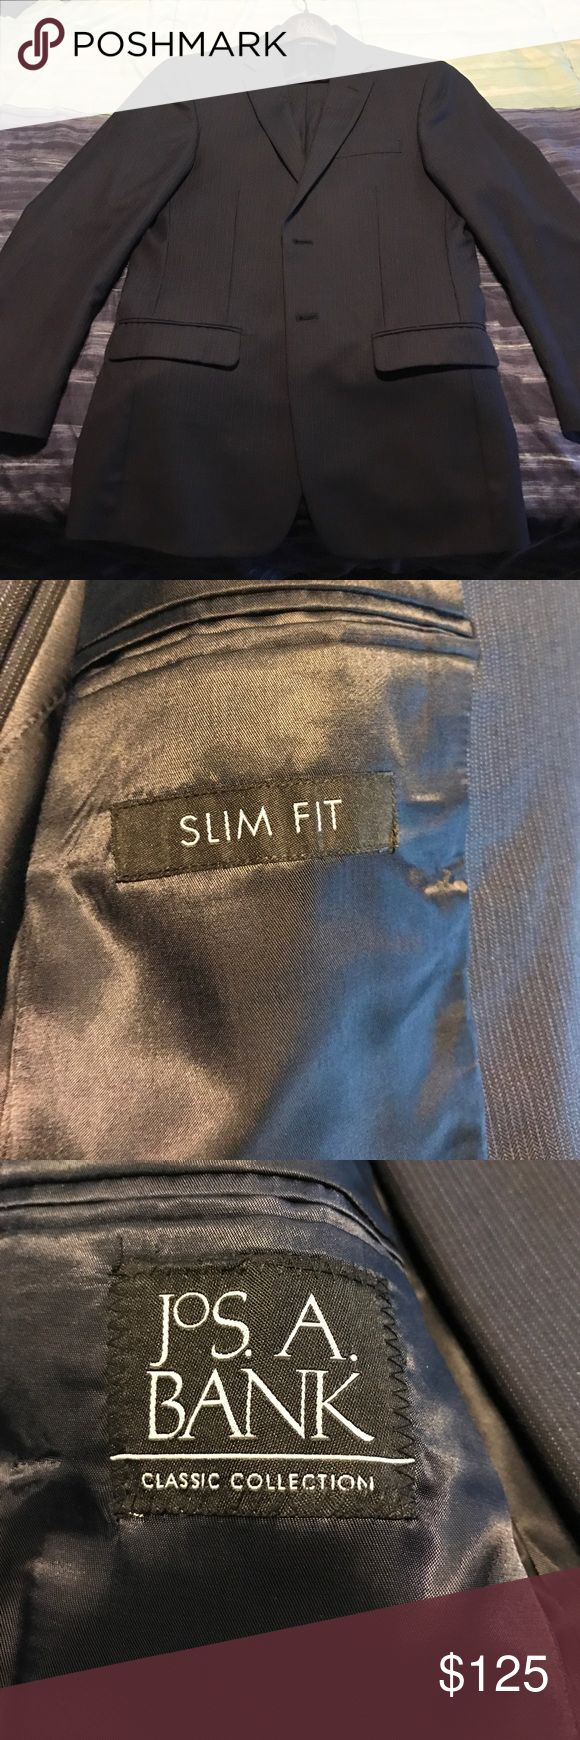 Jos A. Bank Slim Fit Suit 38R 33x30 Dry cleaned only. Lightly worn. Side Sean on pants popped. Easy fix. Jos. A. Bank Suits & Blazers Suits